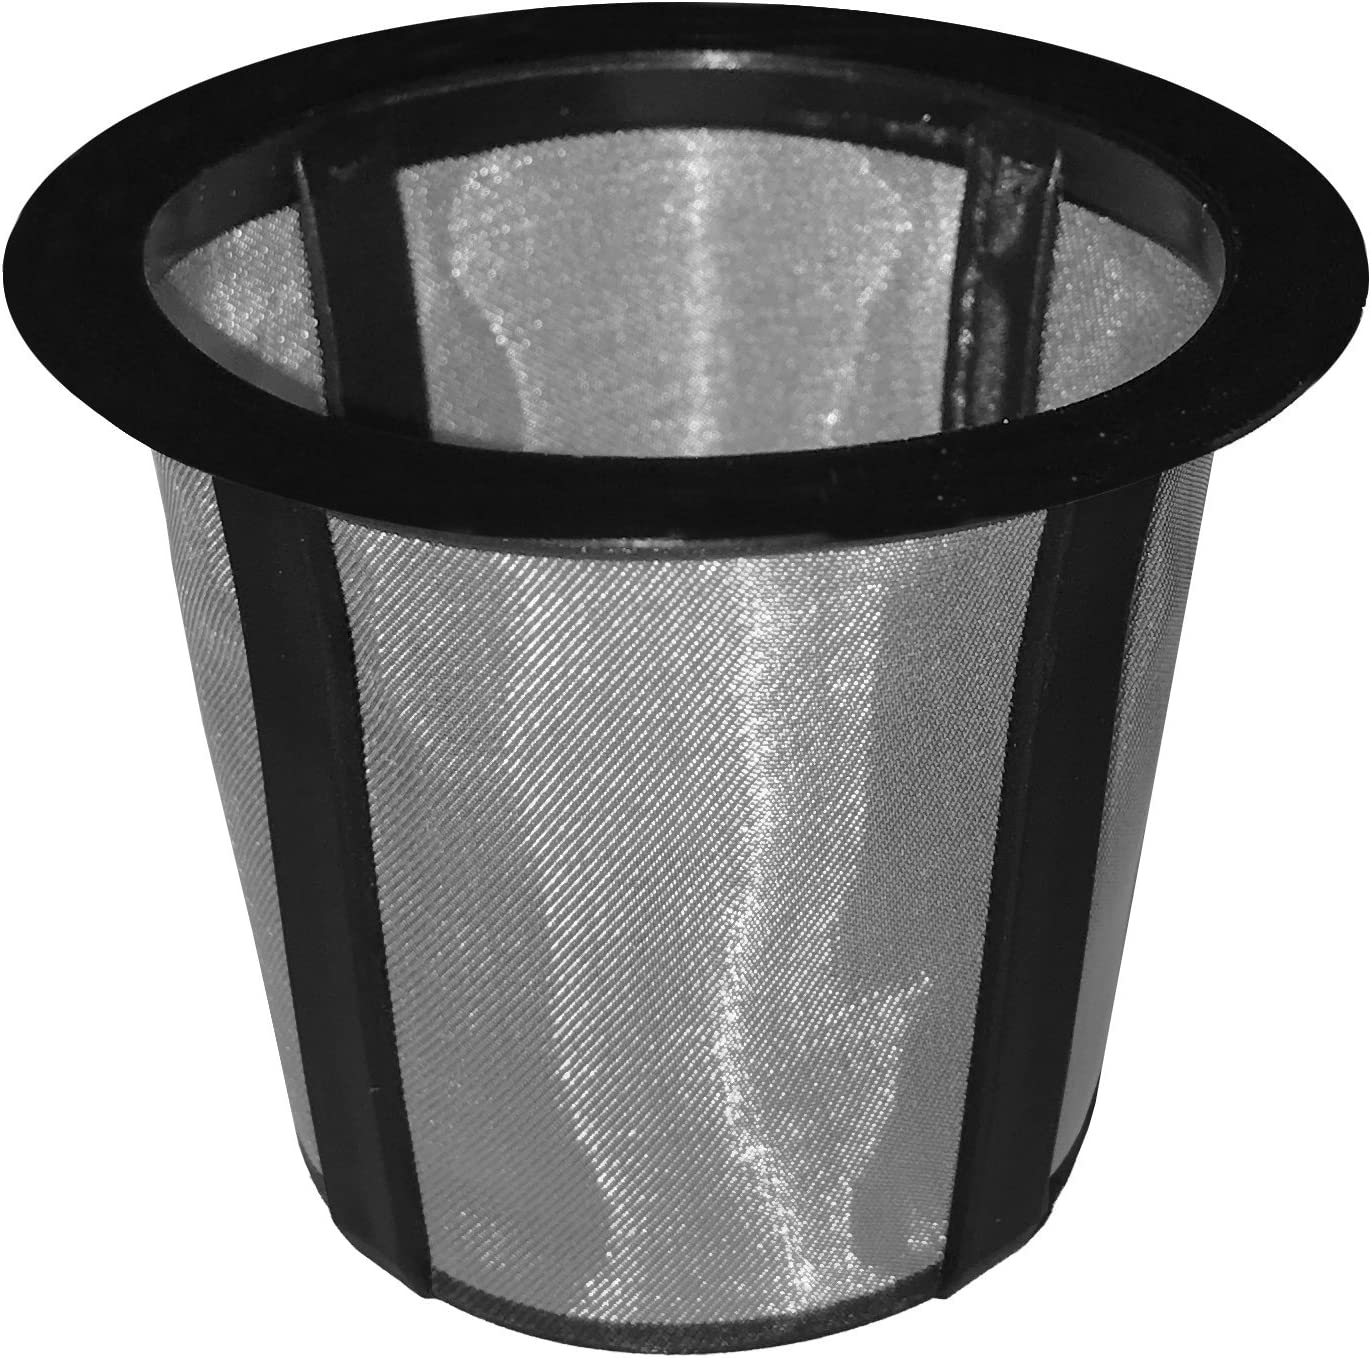 4 Filter Basket Replacements for Keurig Cuisinart My K-Cup Reusable Coffee